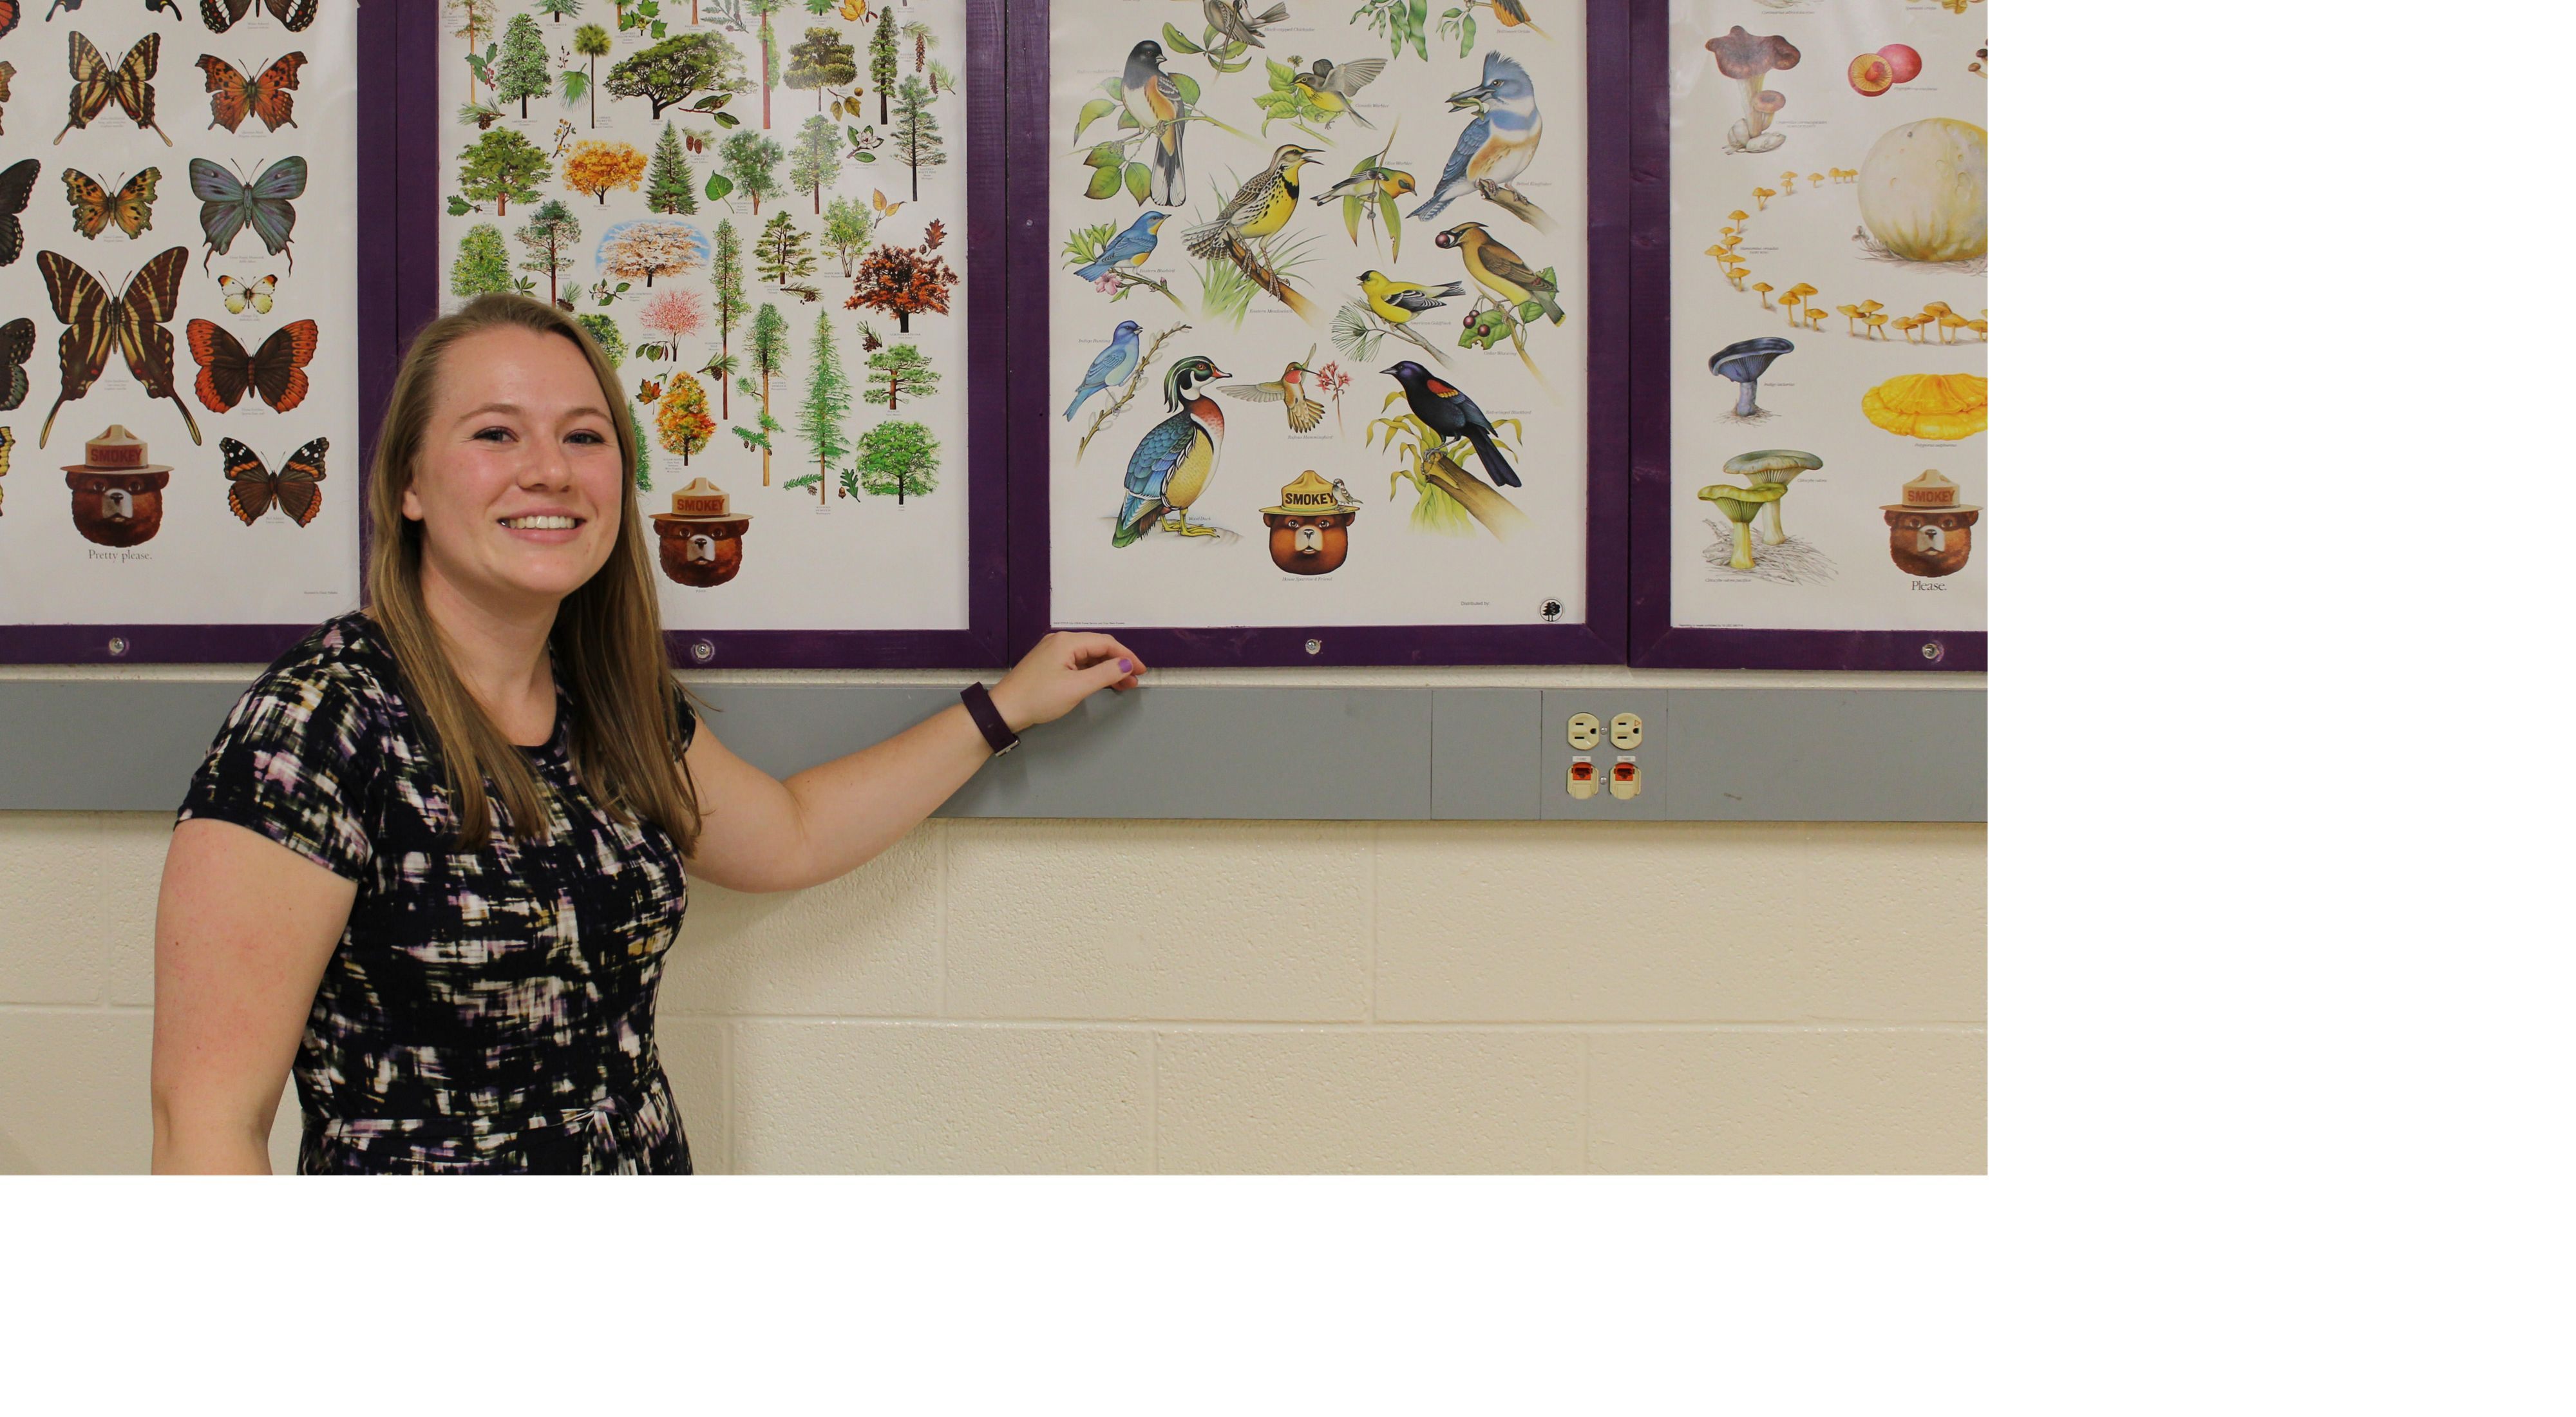 Close-up of Wisconsin teacher Corinne Grossmeier standing in her classroom in front of a wall of colorful U.S. Forest Service posters of trees, birds, butterflies and fungi.